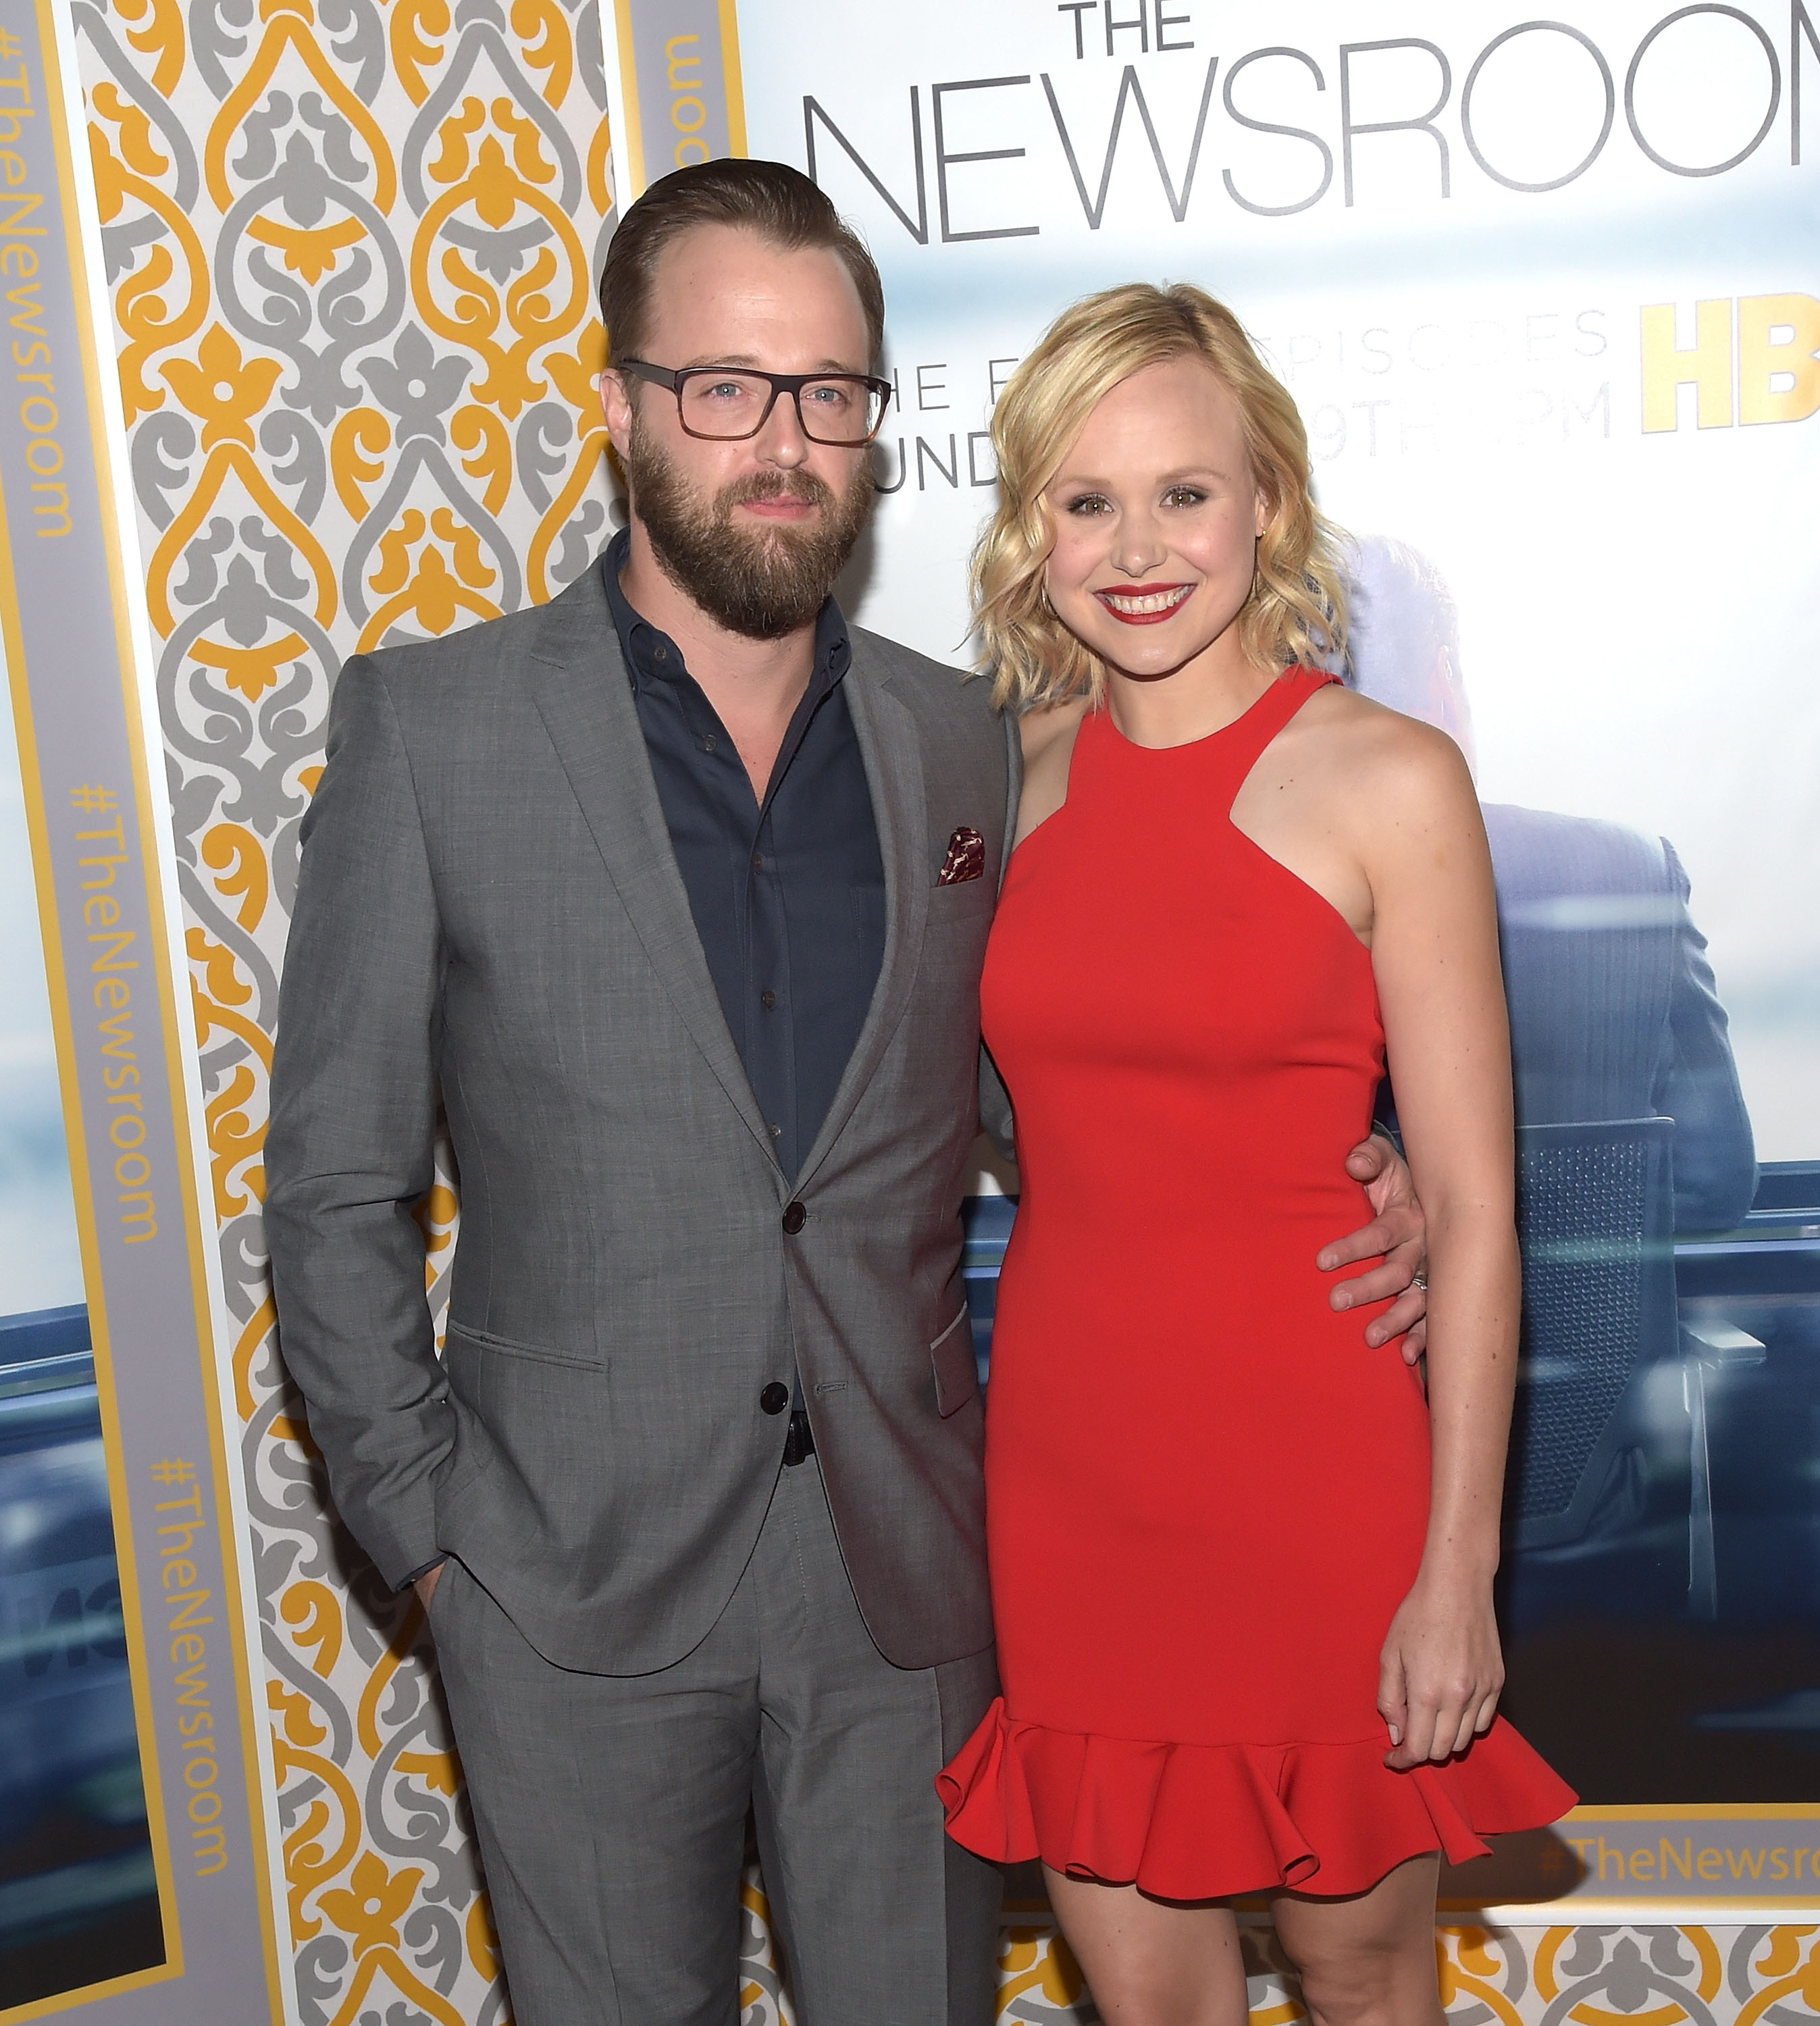 Alison Pill Fotos the newsroom's' alison pill gets engaged (photo) | access online